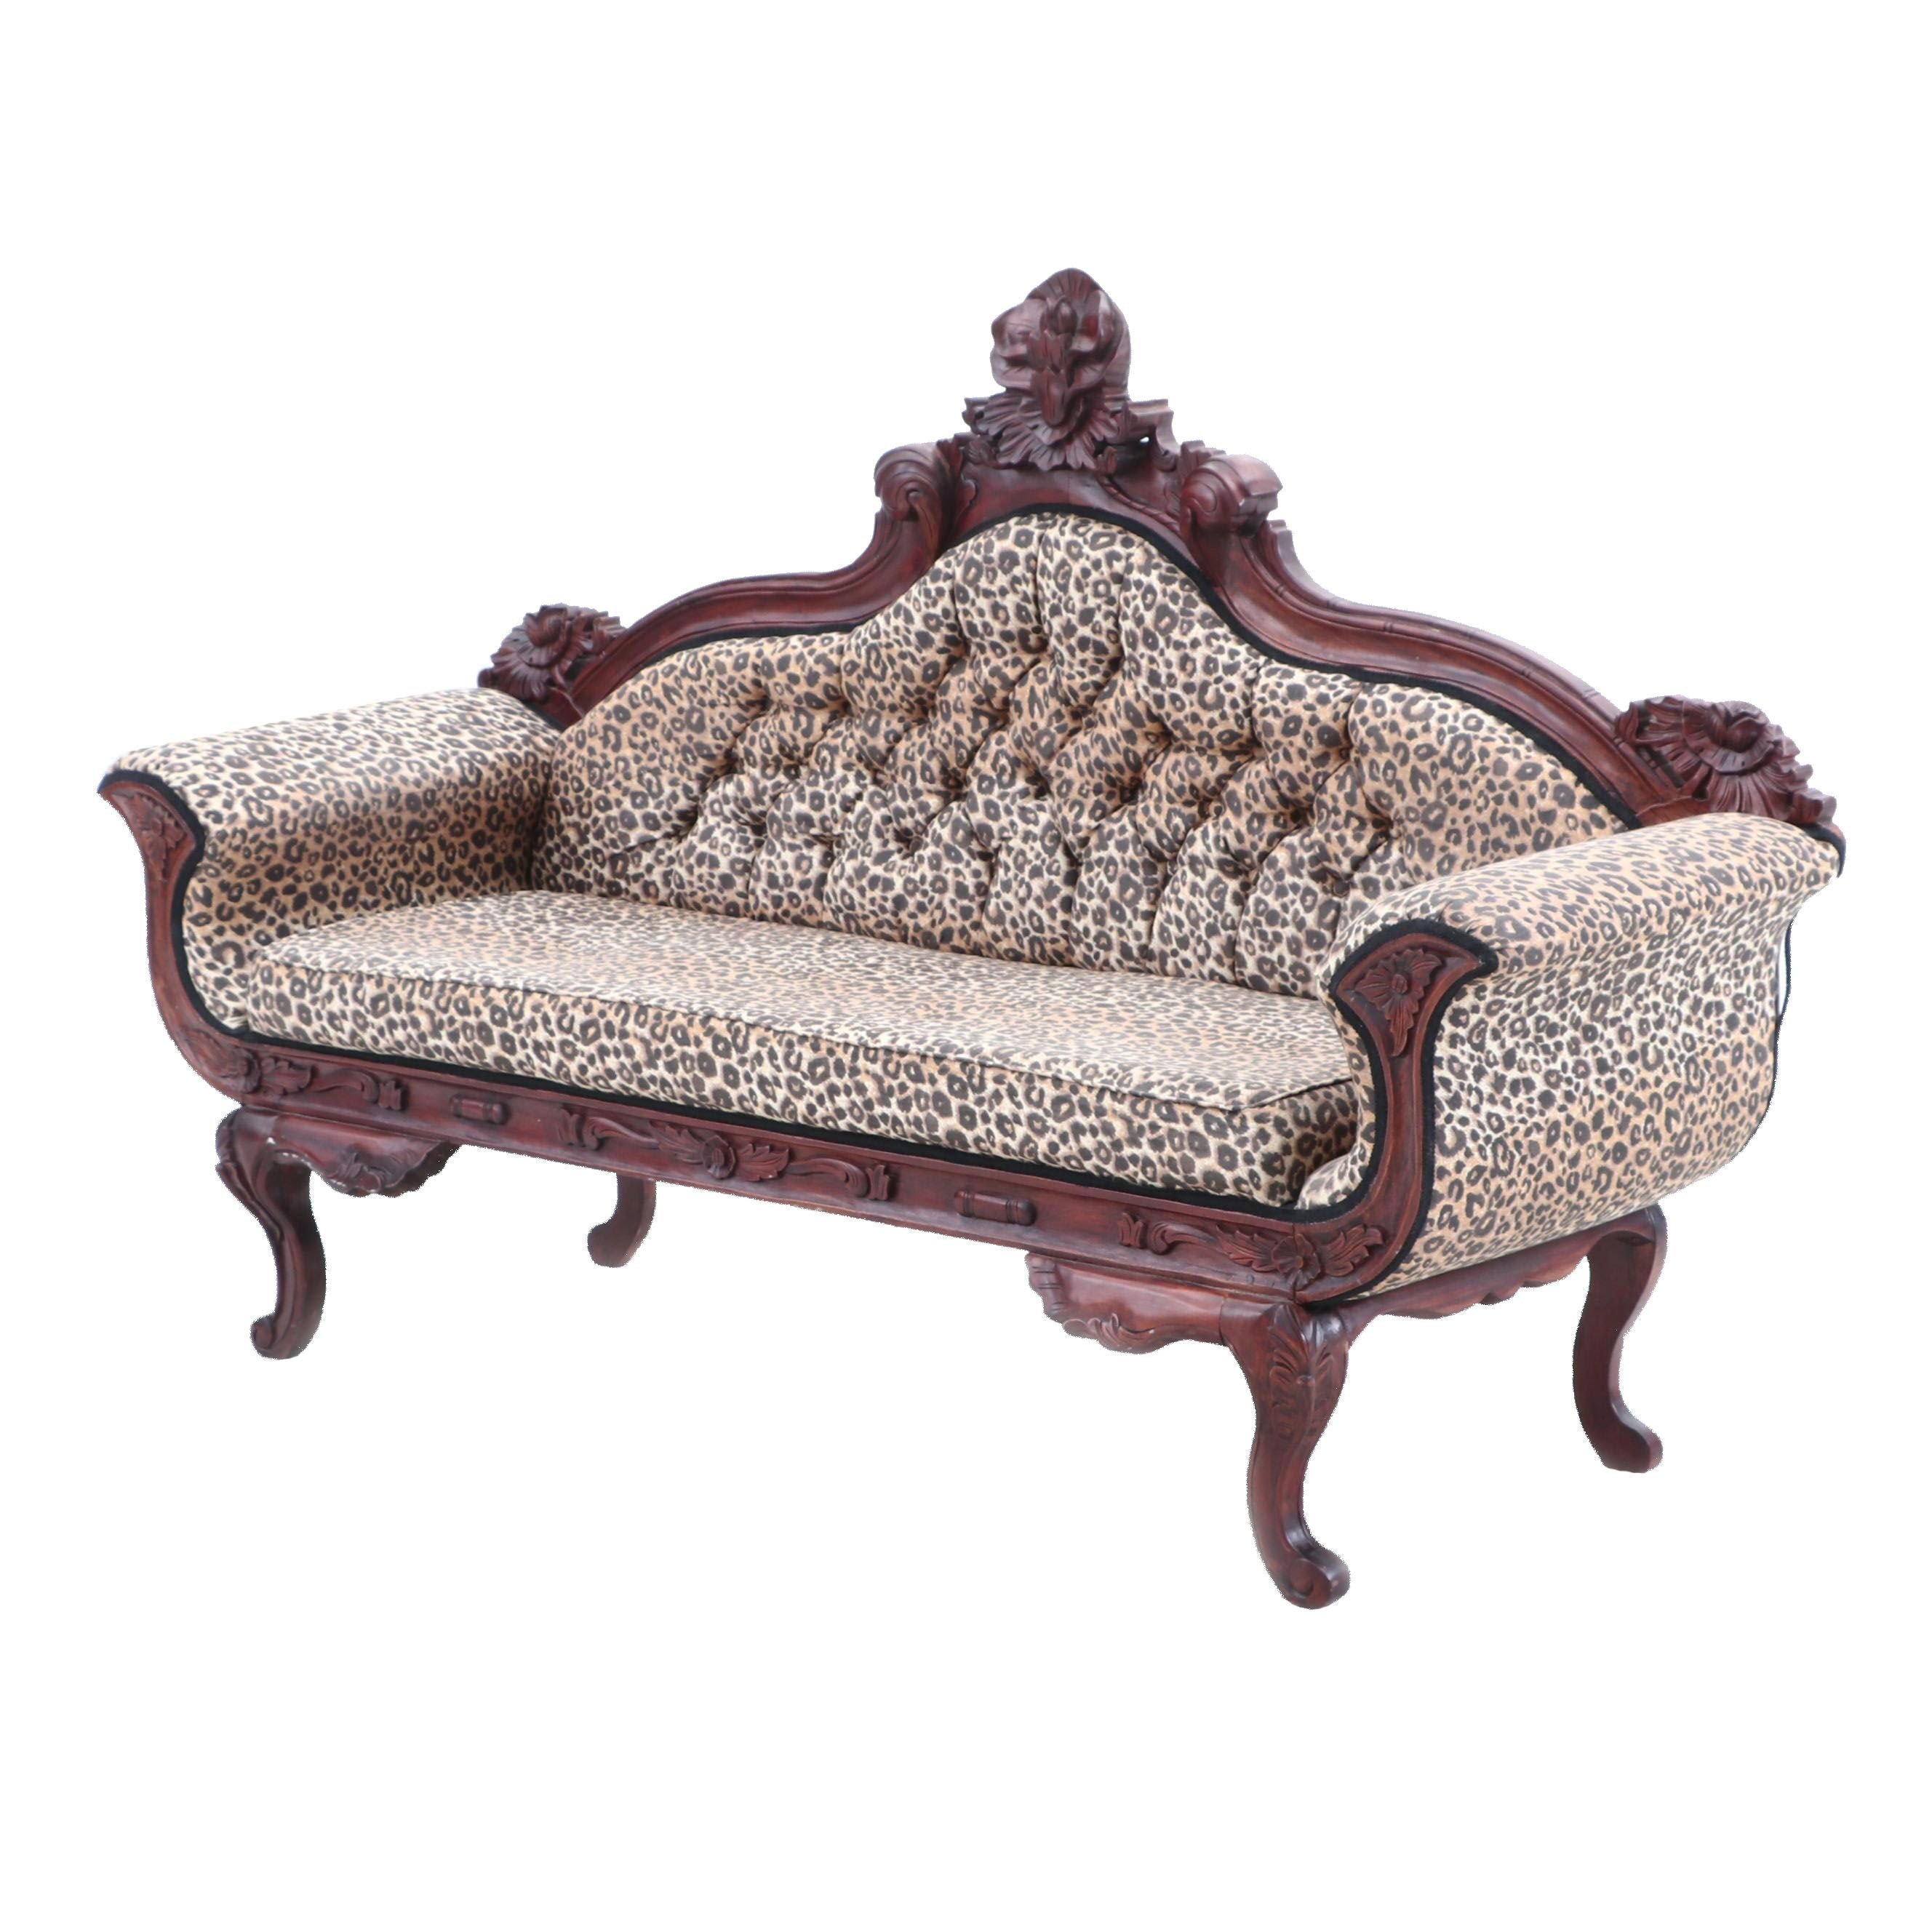 British Colonial Style Button Tufted Sofa in Mahogany Finish